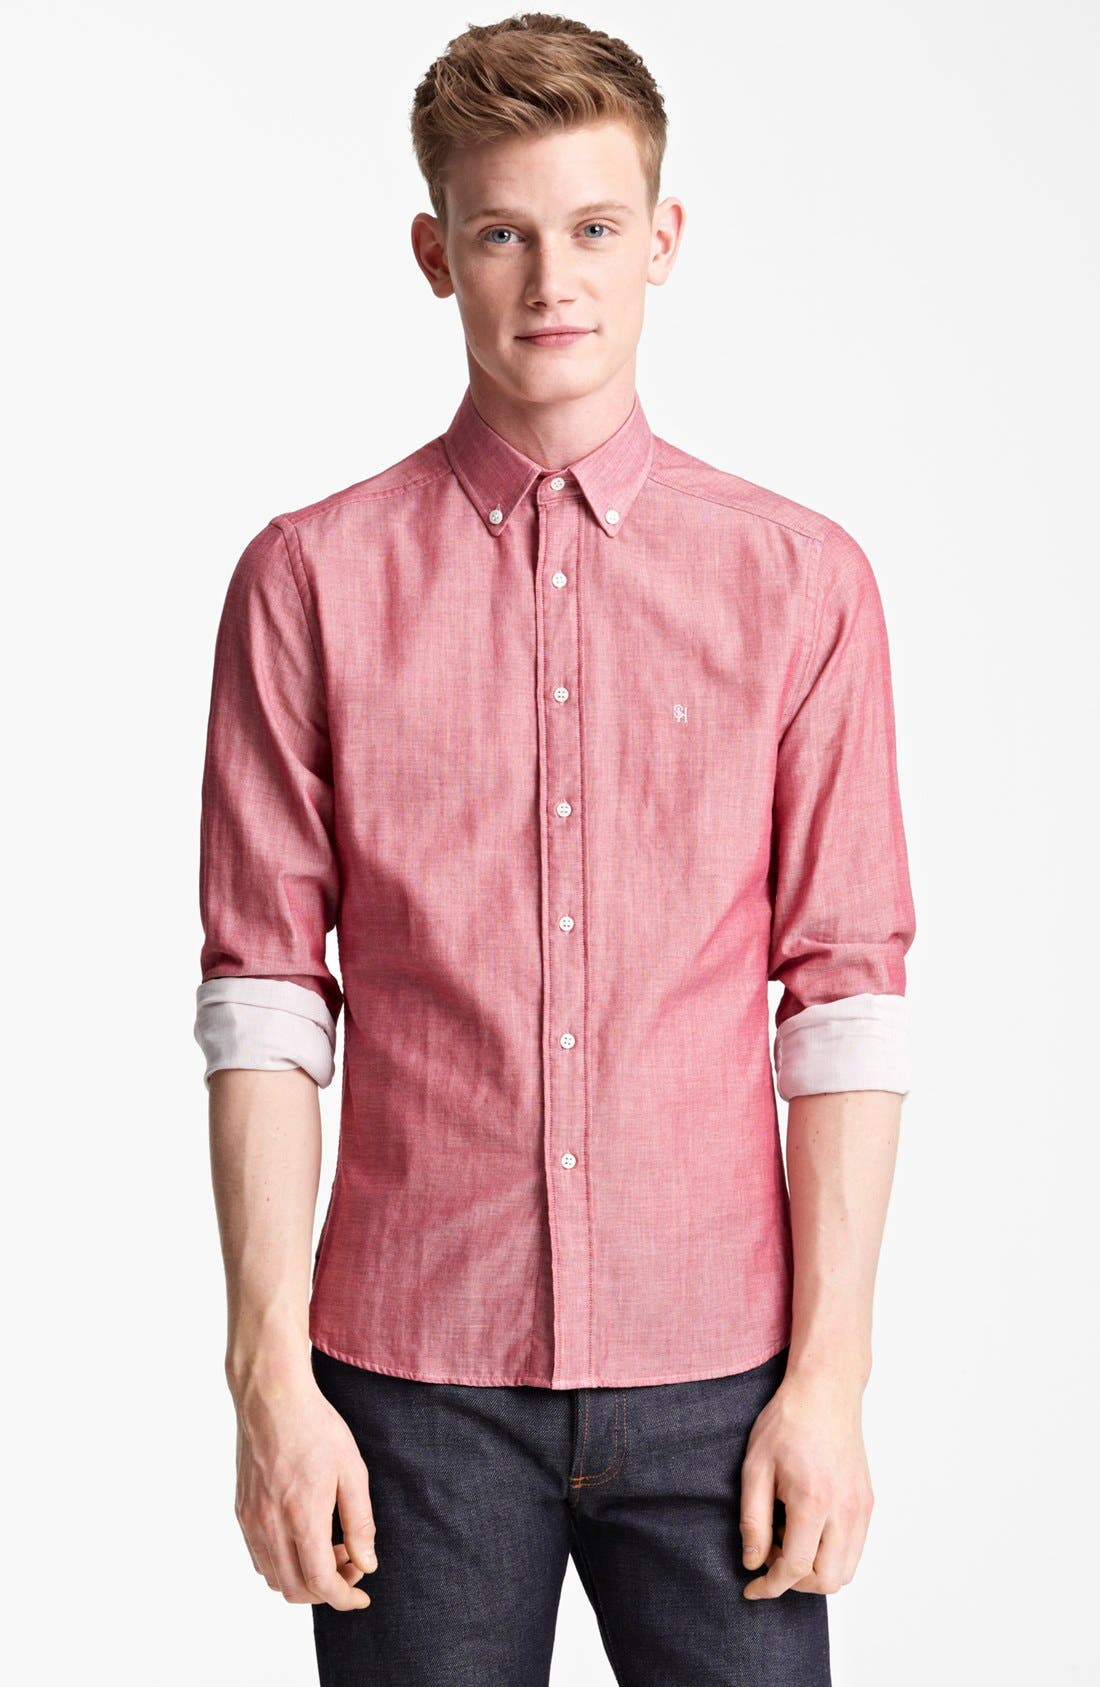 Alternate Image 1 Selected - Shipley & Halmos 'Booster' Sport Shirt